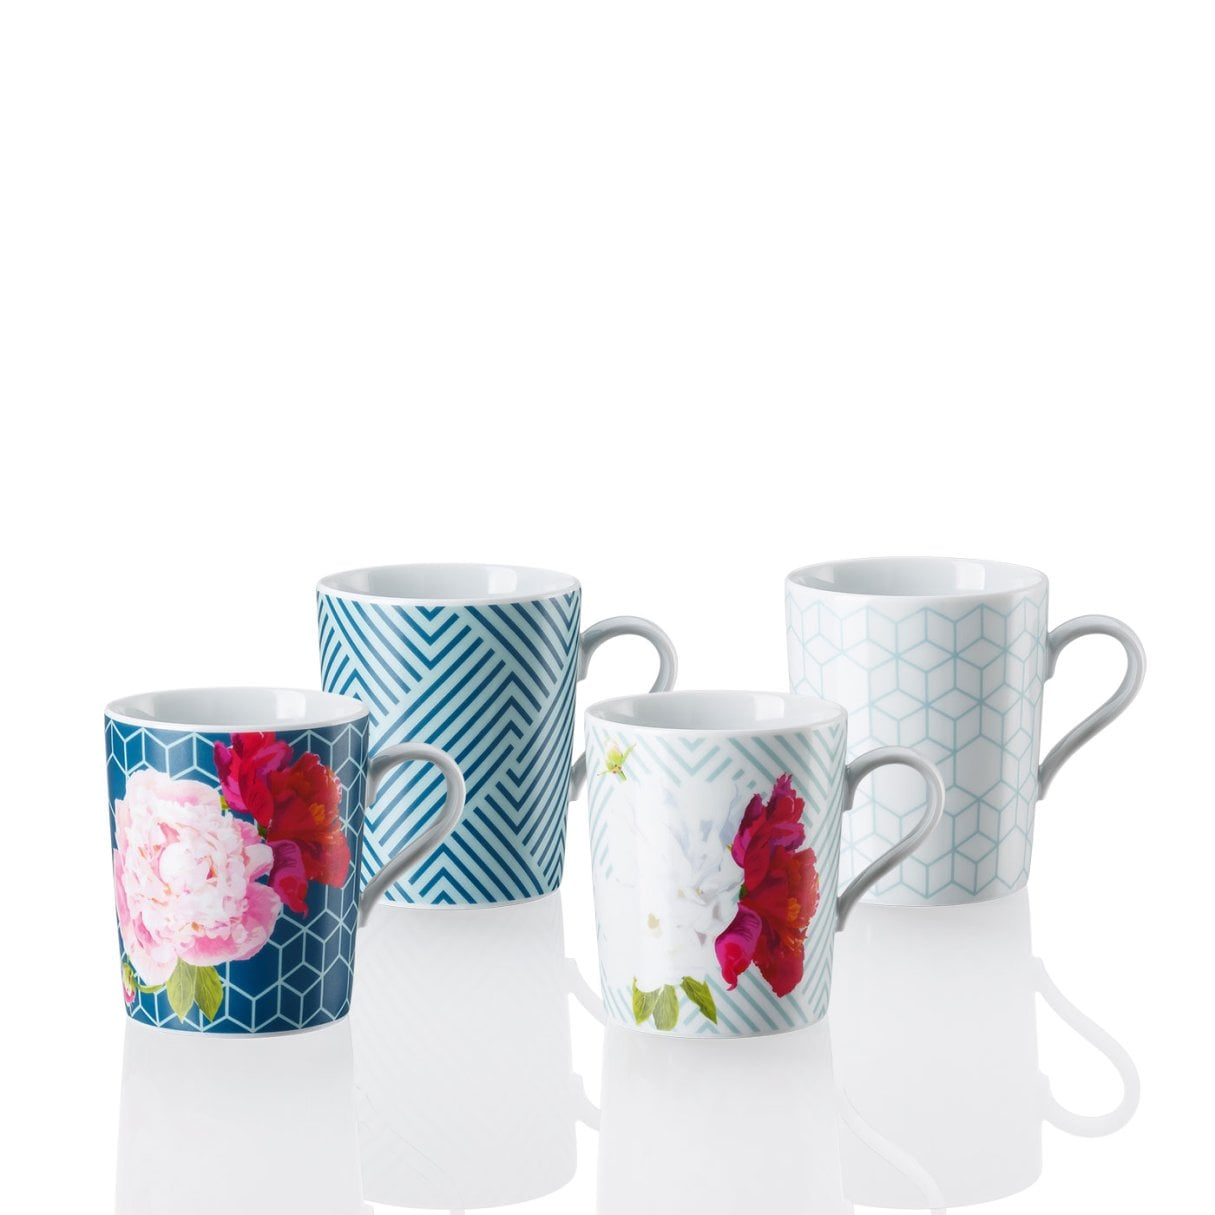 Set 4 pcs. Mug with handle